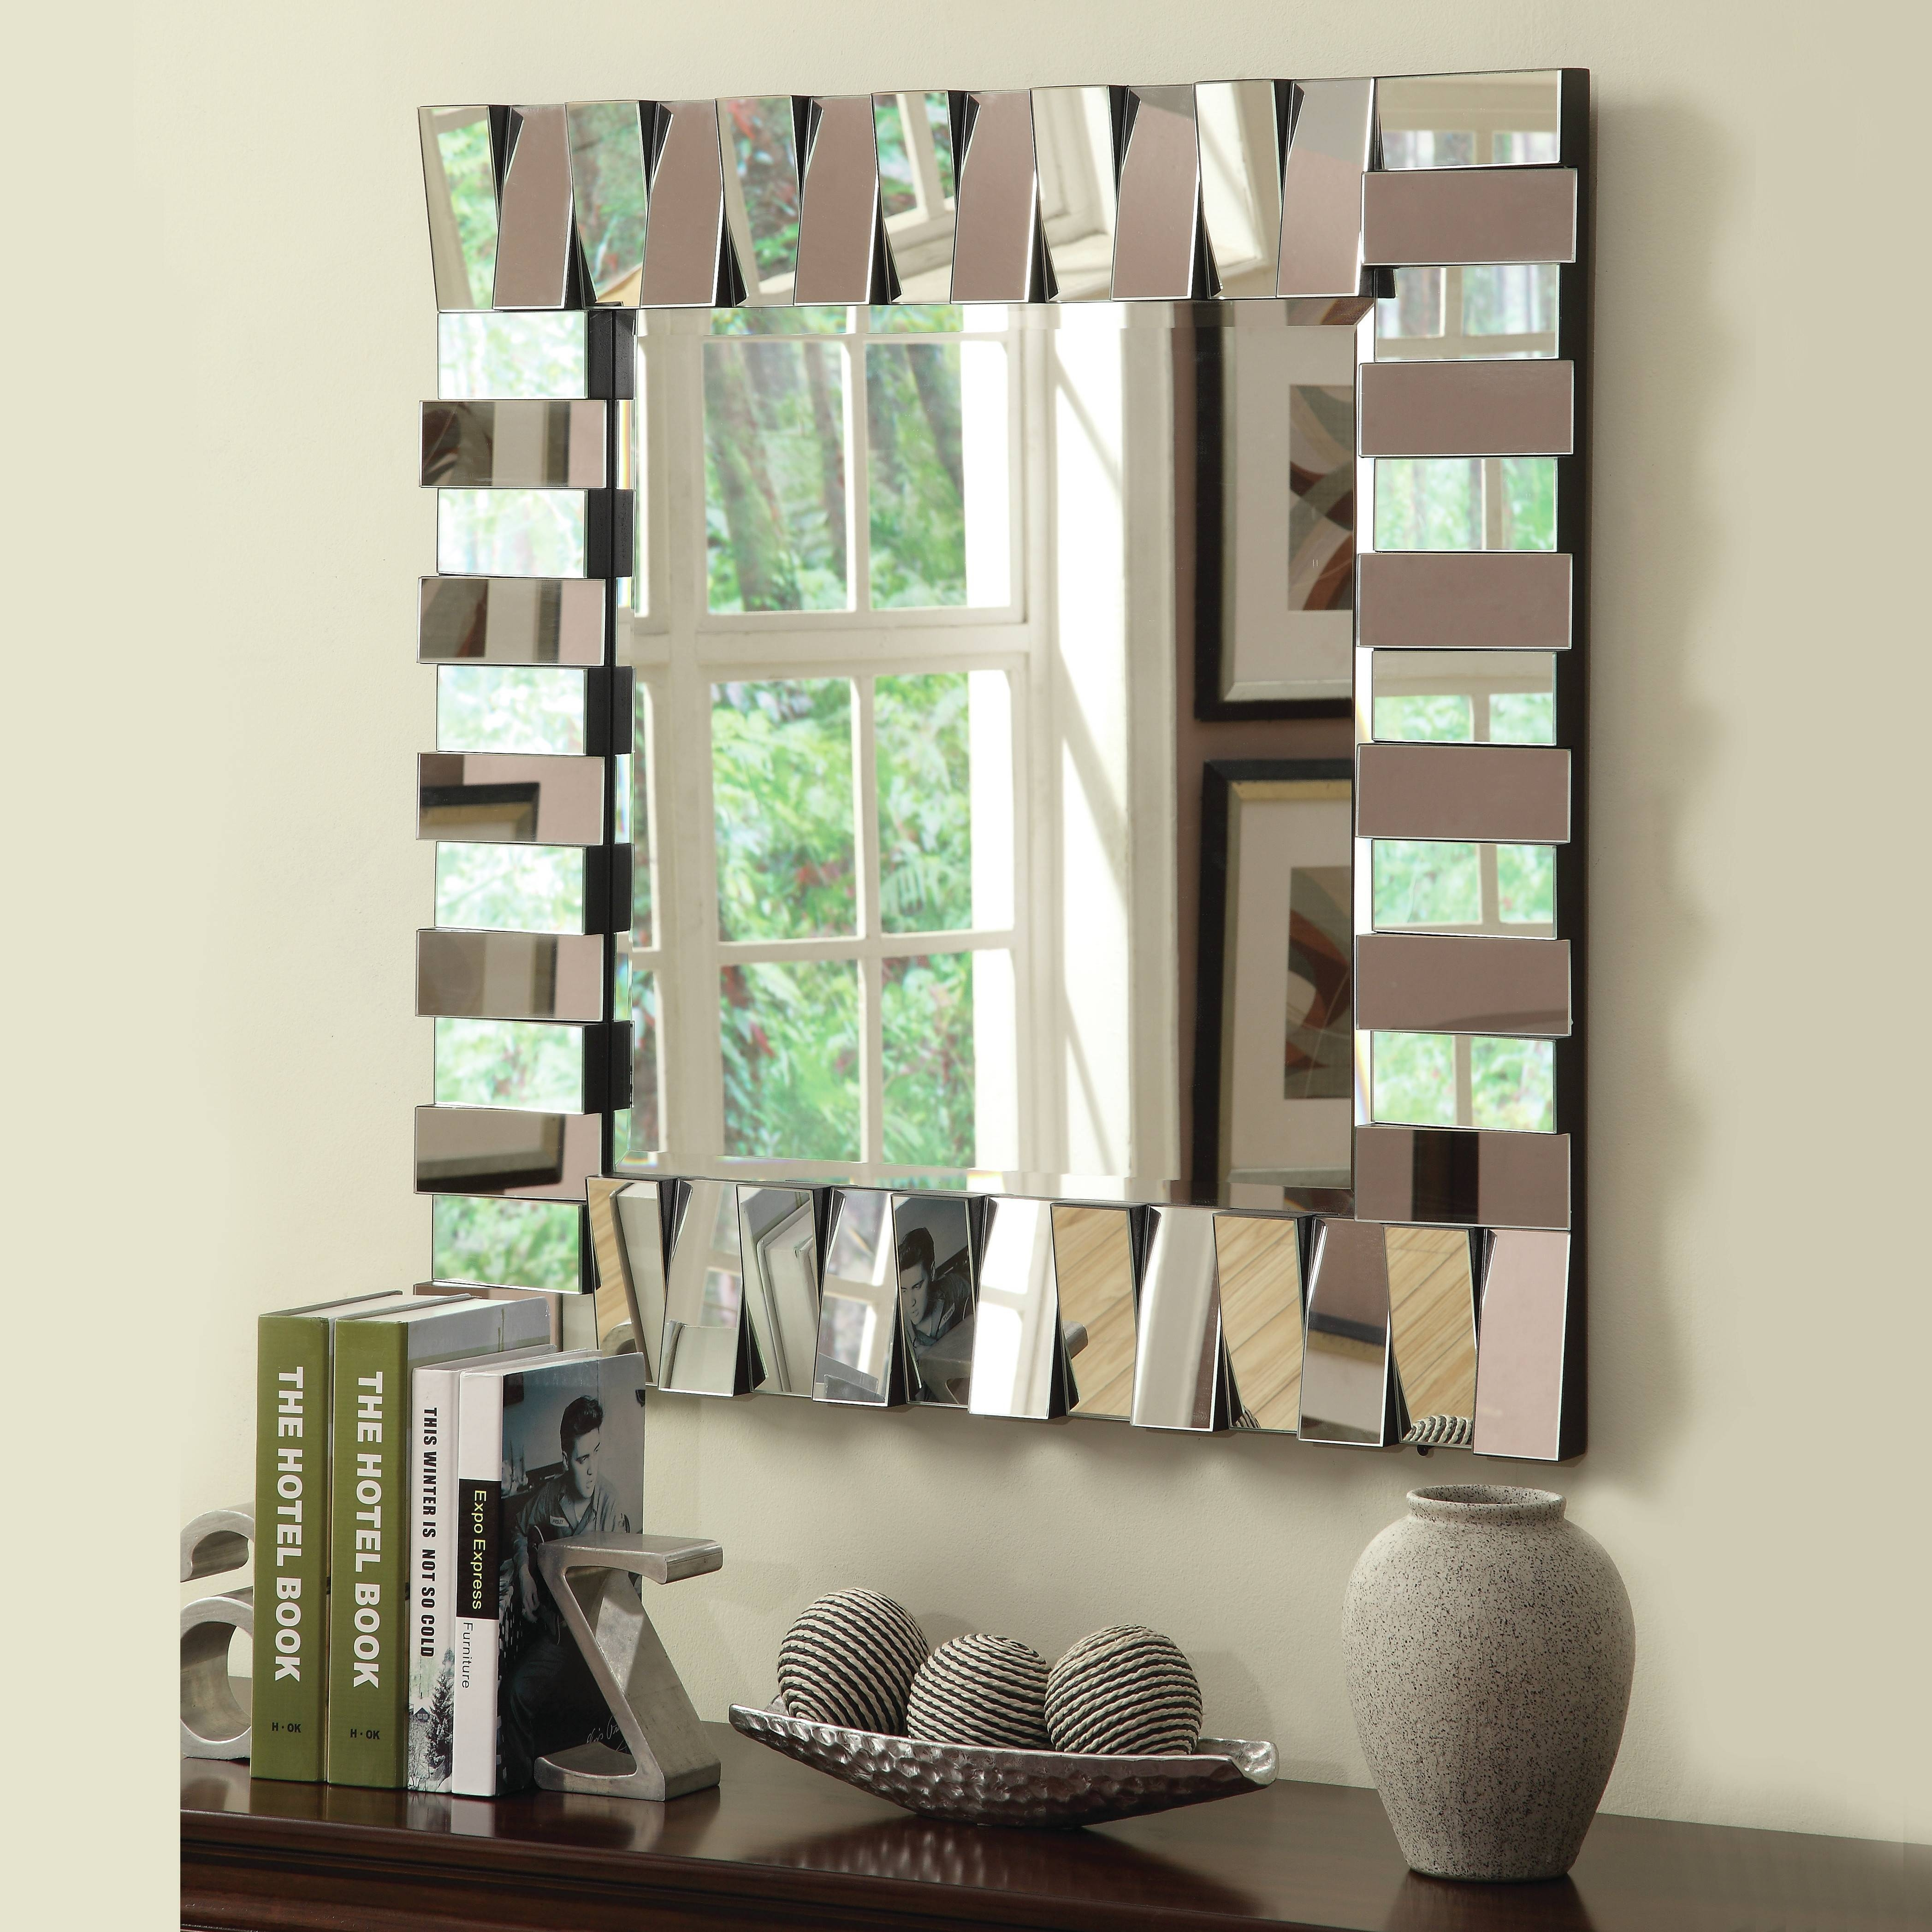 Wayfair Wall Mirrors - Wall Shelves with Big Modern Mirrors (Image 15 of 15)